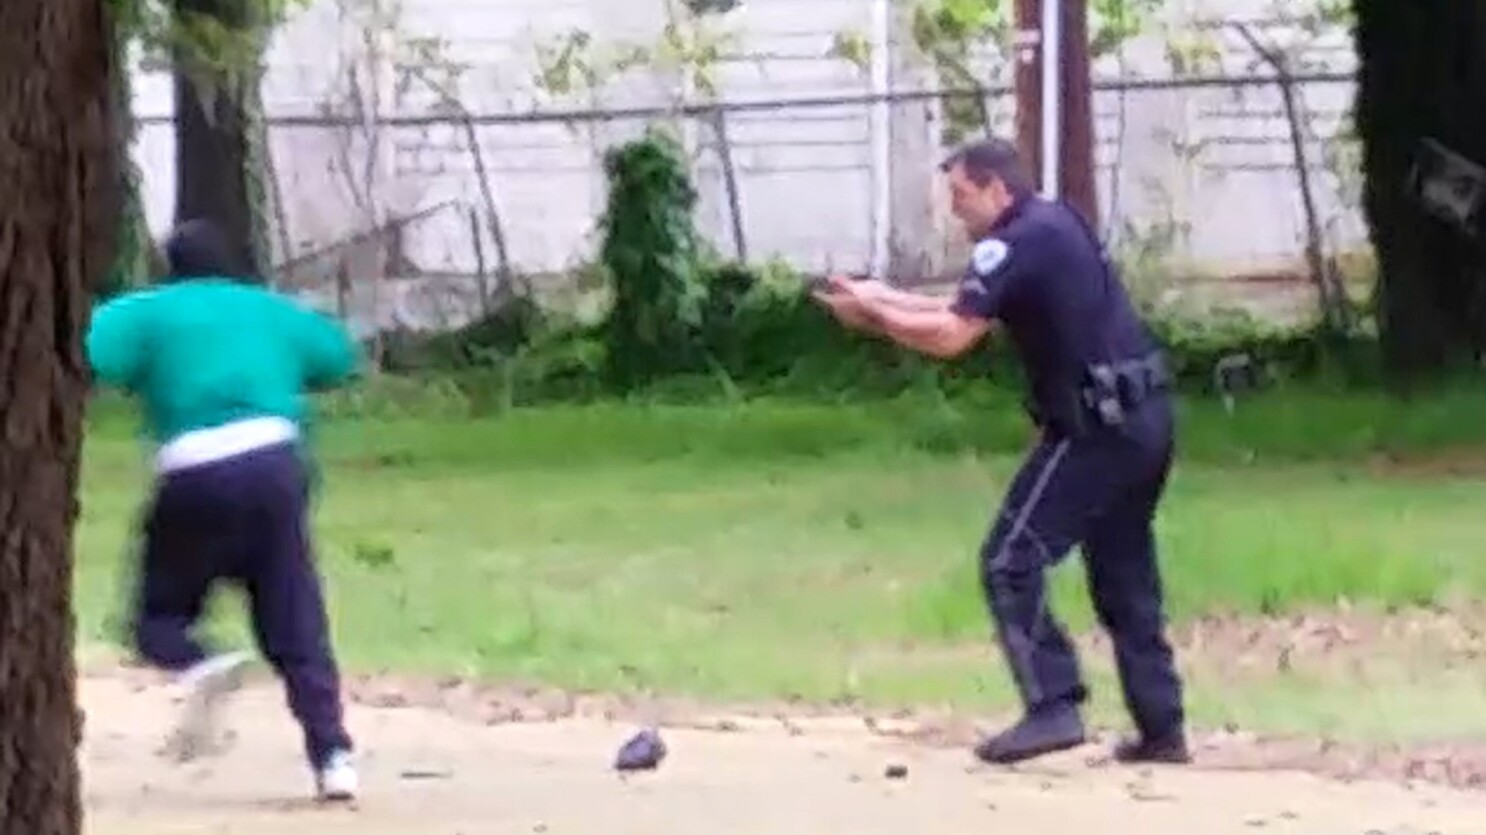 Getting shot by police is a leading cause of death for U.S. black men